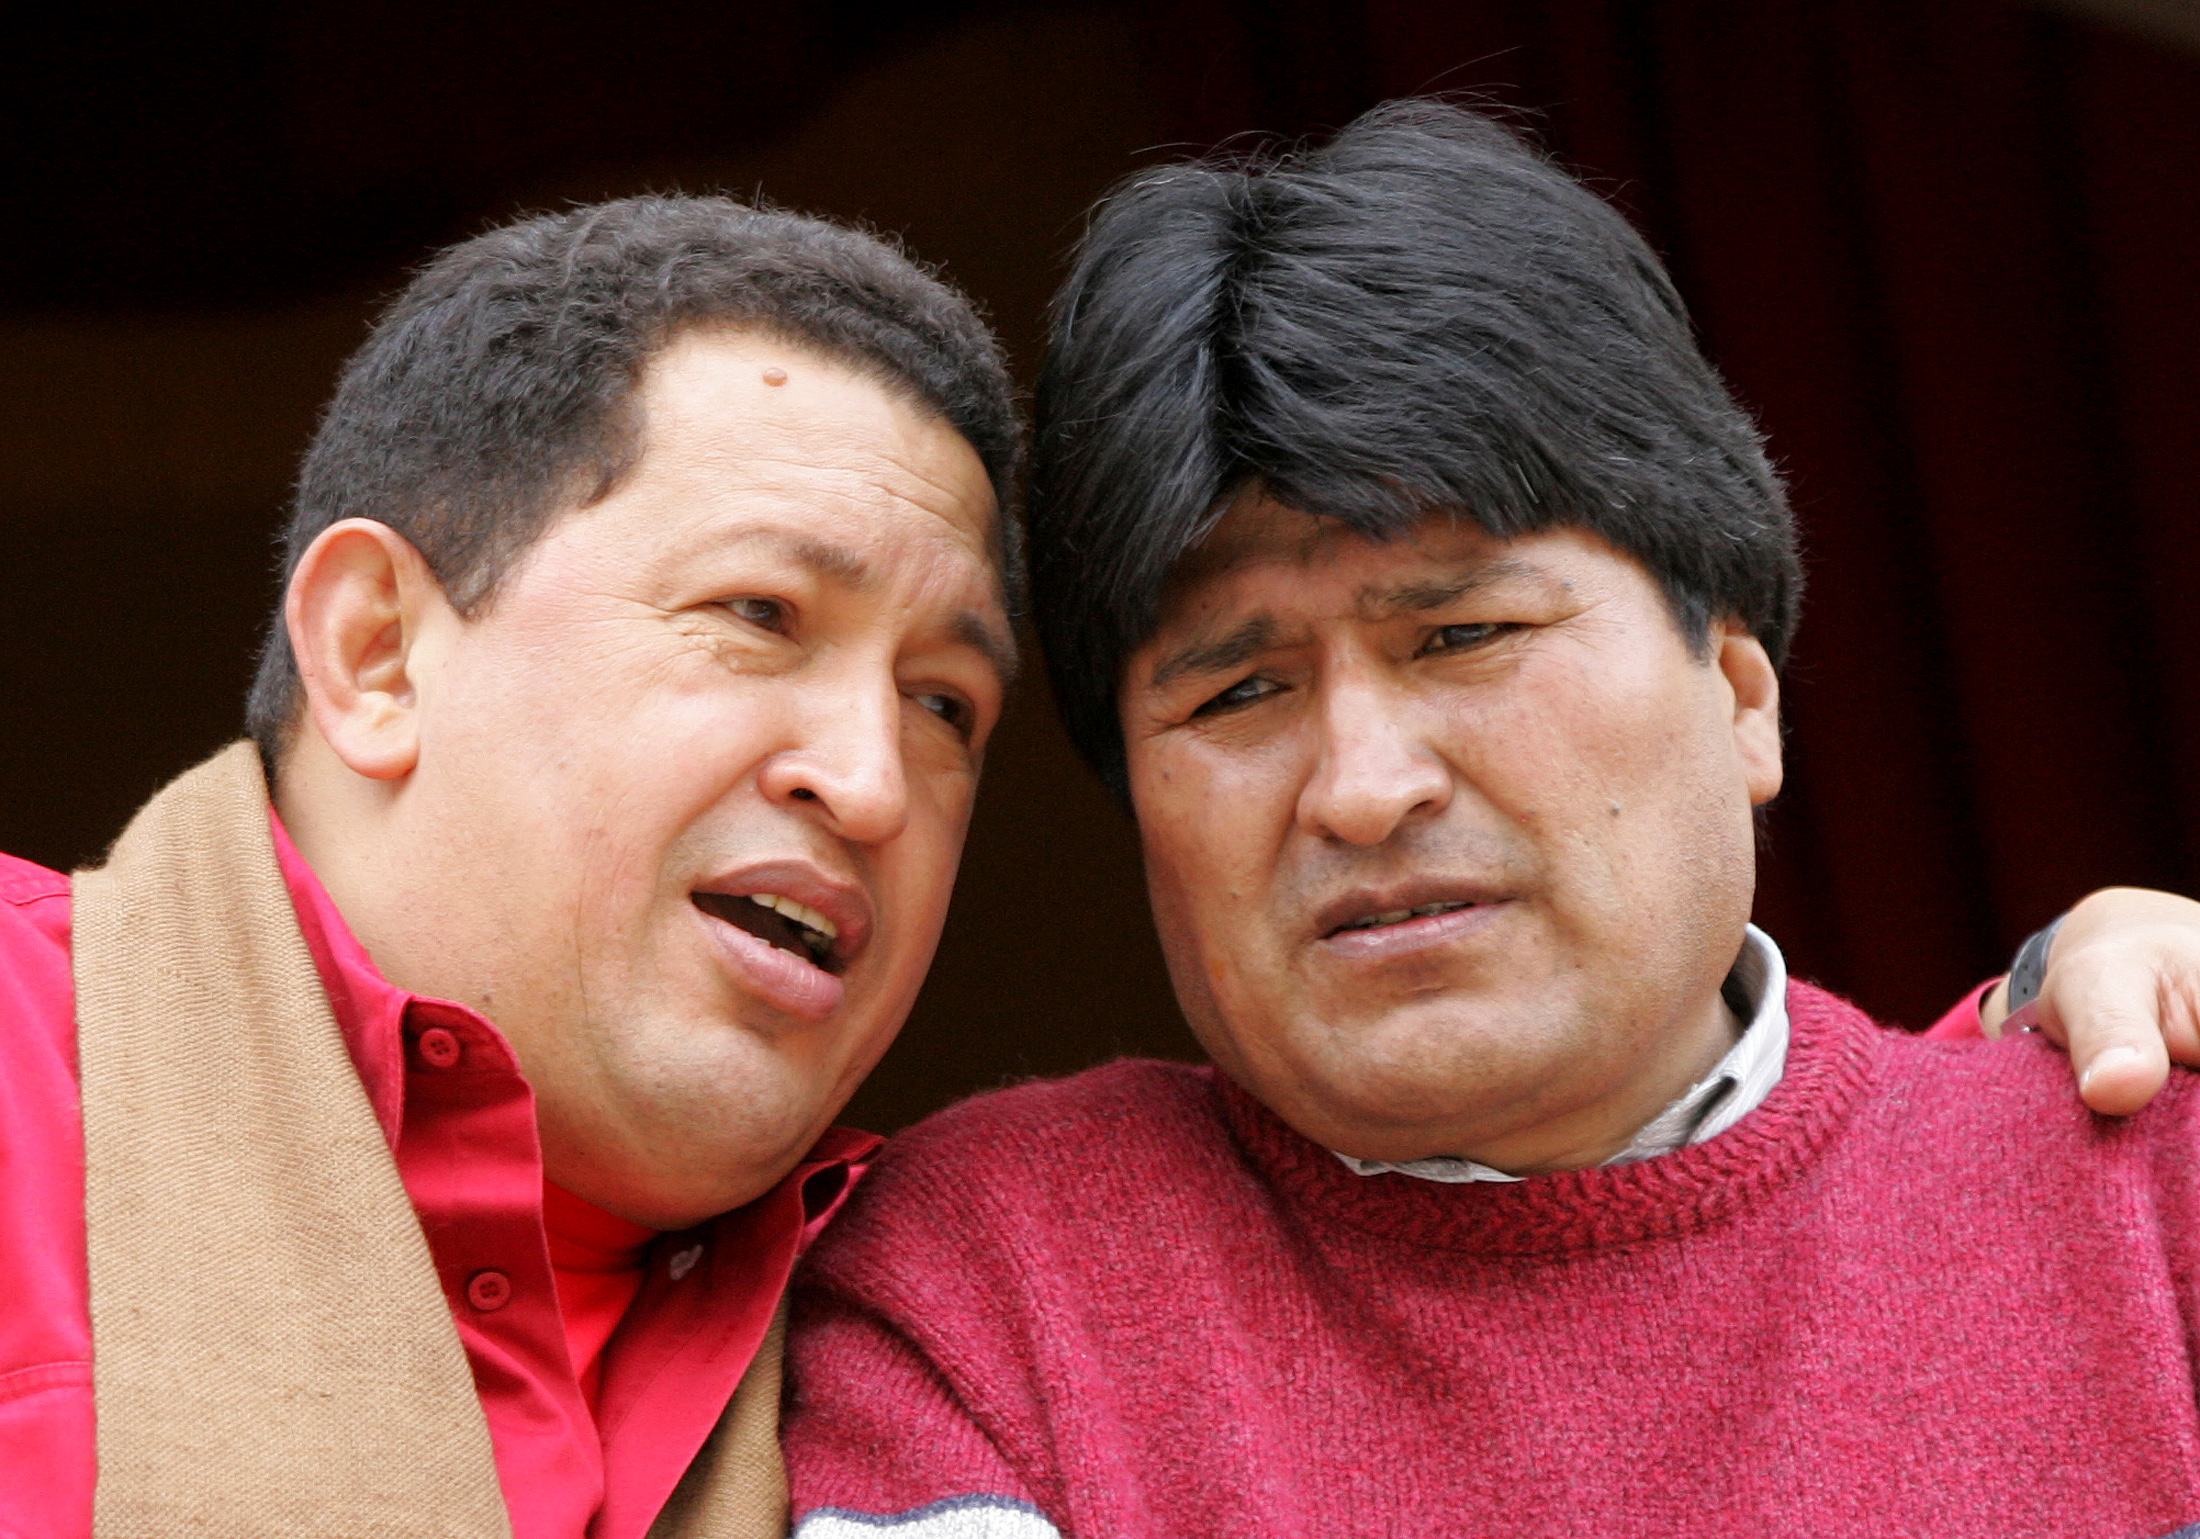 Bolivian President Evo Morales (R) chats with his Venezuelan counterpart Hugo Chavez as they watch a demonstration of folkloric dance from the balcony of the government palace in La Paz January 23, 2006. ©REUTERS/Jose Miguel Gomez